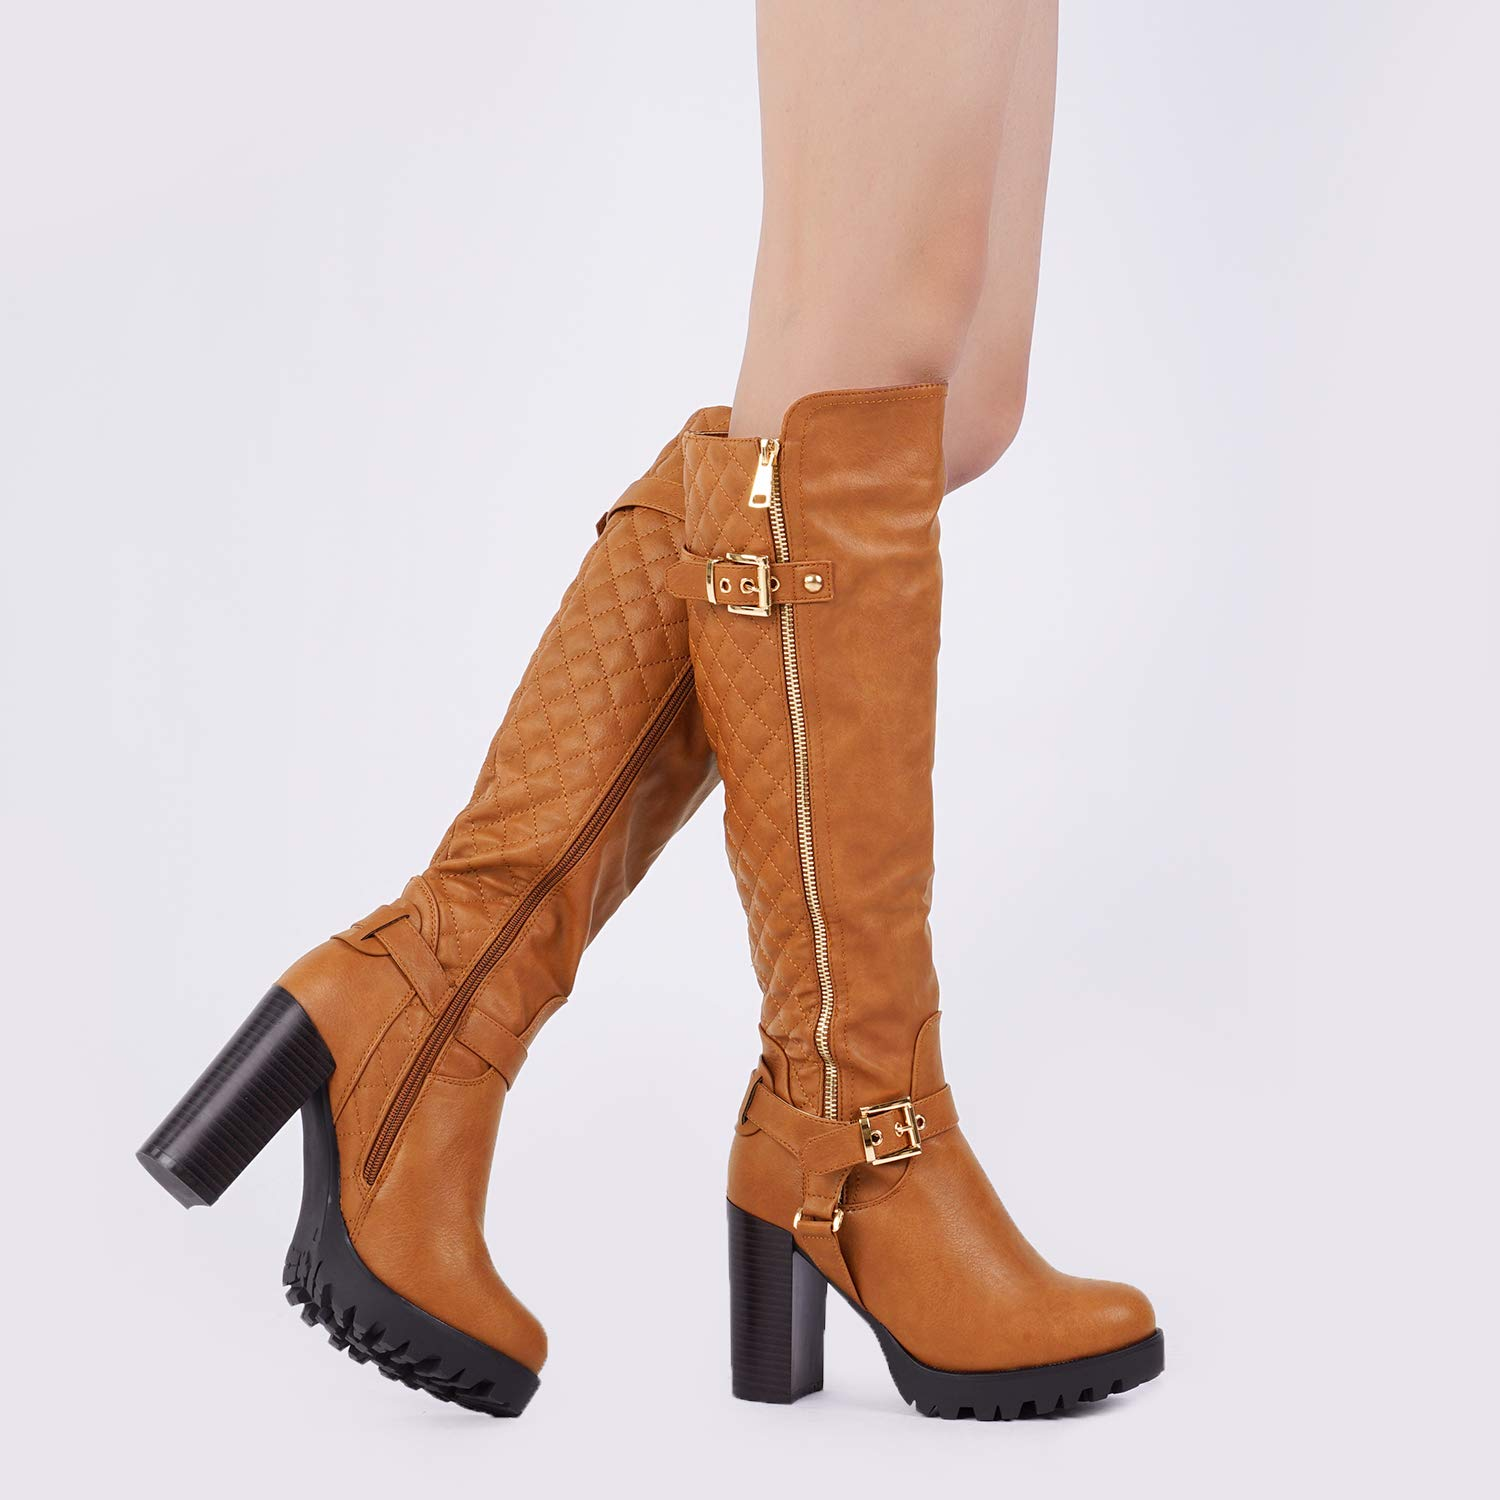 6a77cff0d59 DREAM PAIRS Lacey Over Knee High Heel Lace up Zipper Closure Combat Boots   Amazon.ca  Shoes   Handbags